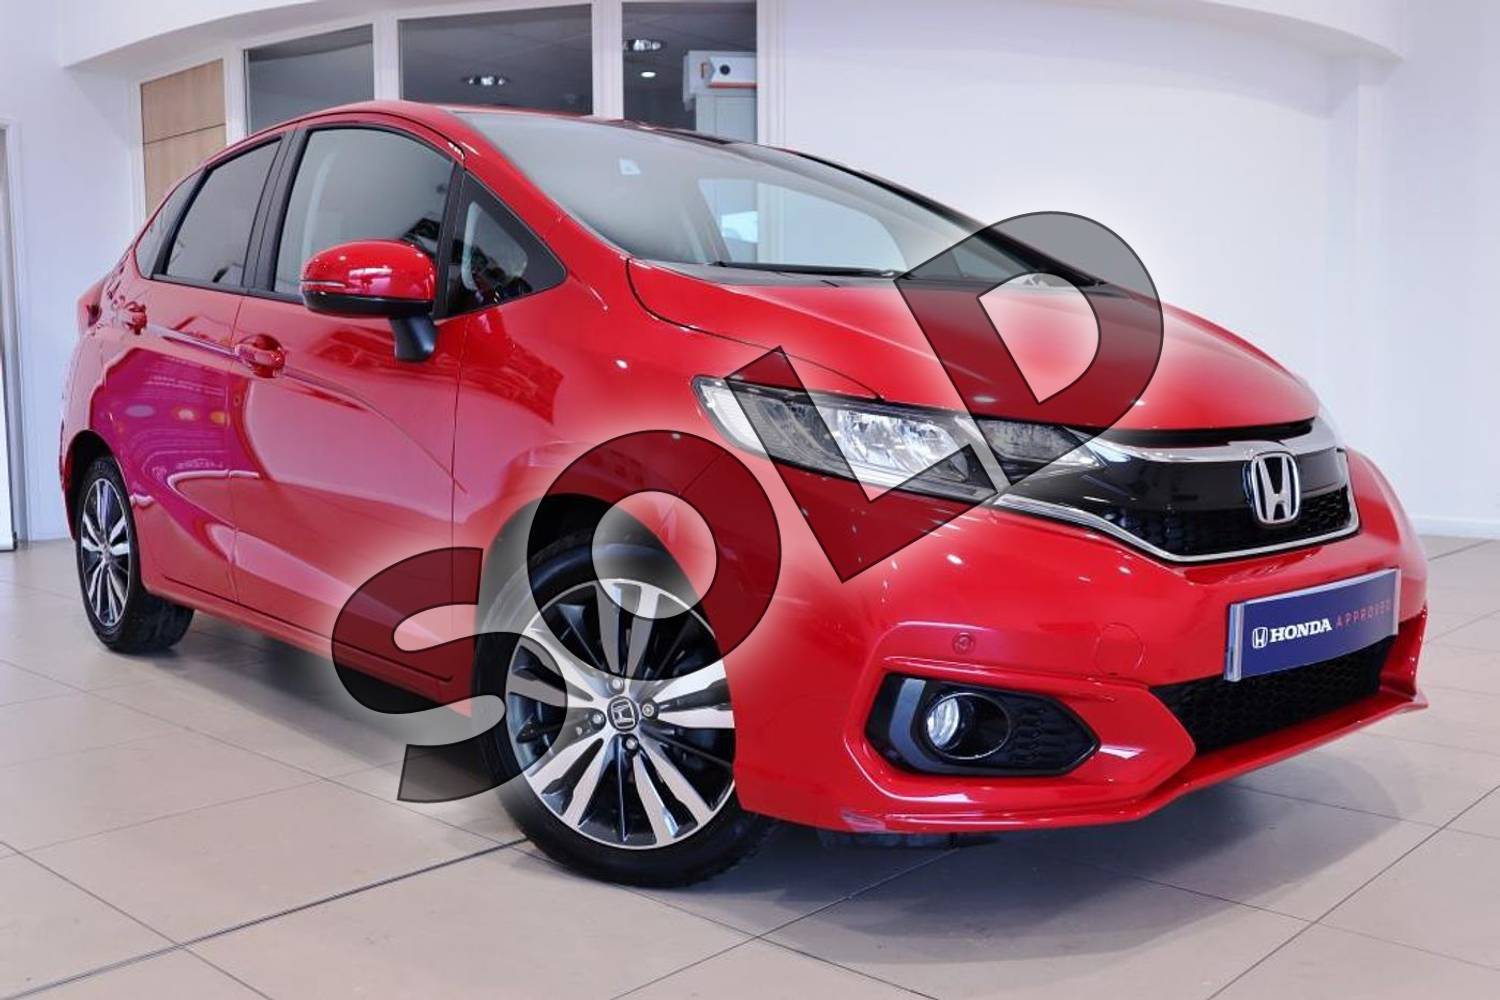 2018 Honda Jazz Hatchback 1.3 EX 5dr CVT in Milano Red at Listers Honda Northampton